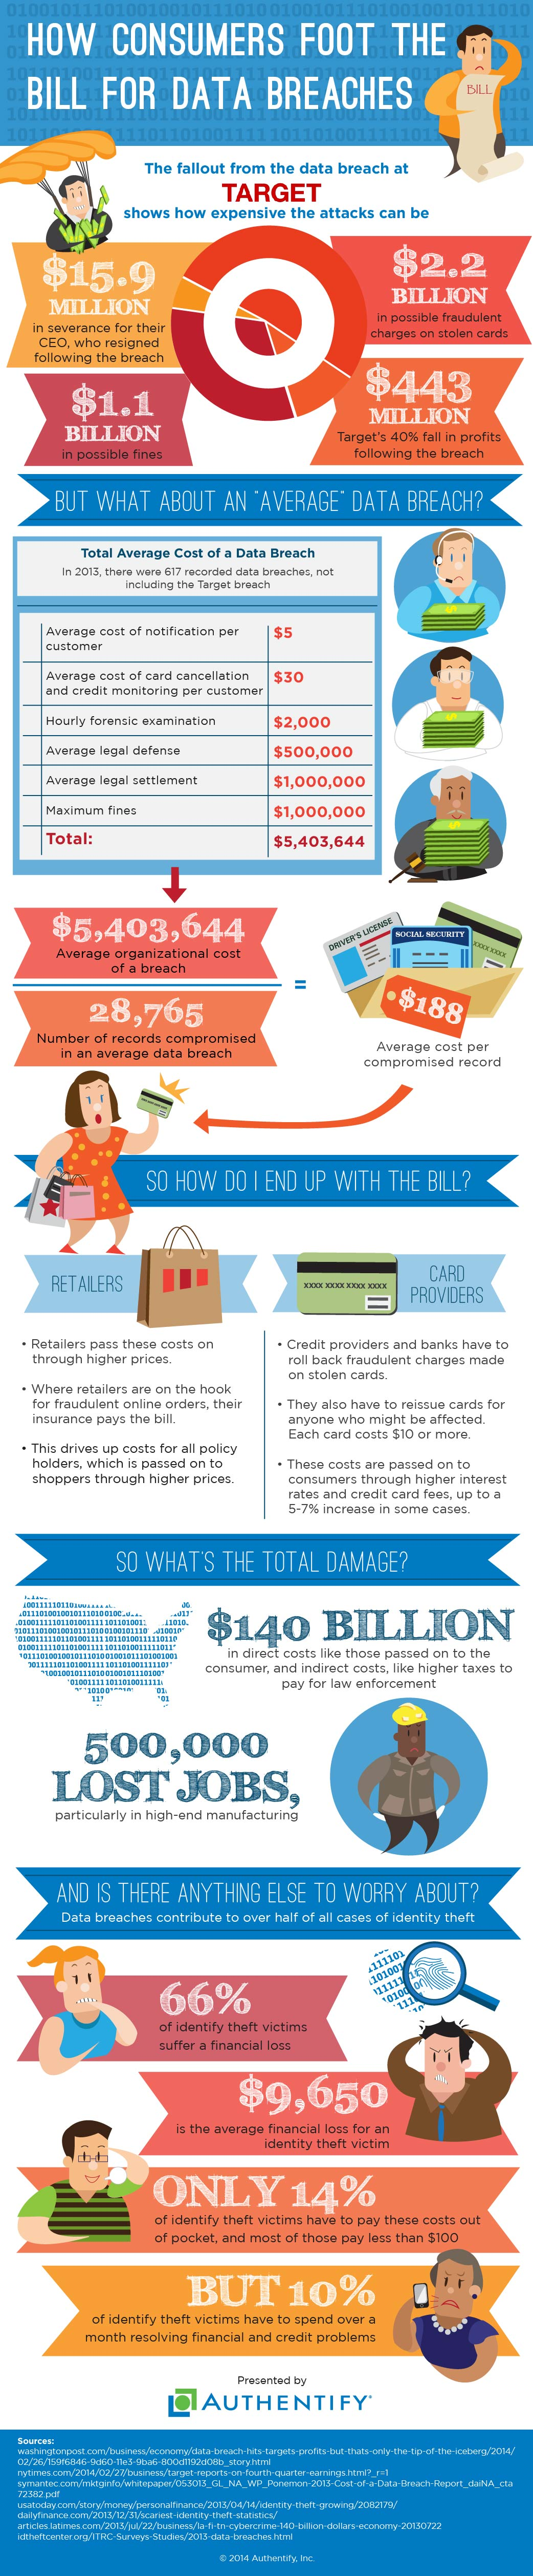 Authentify infographic _target data breach (1)